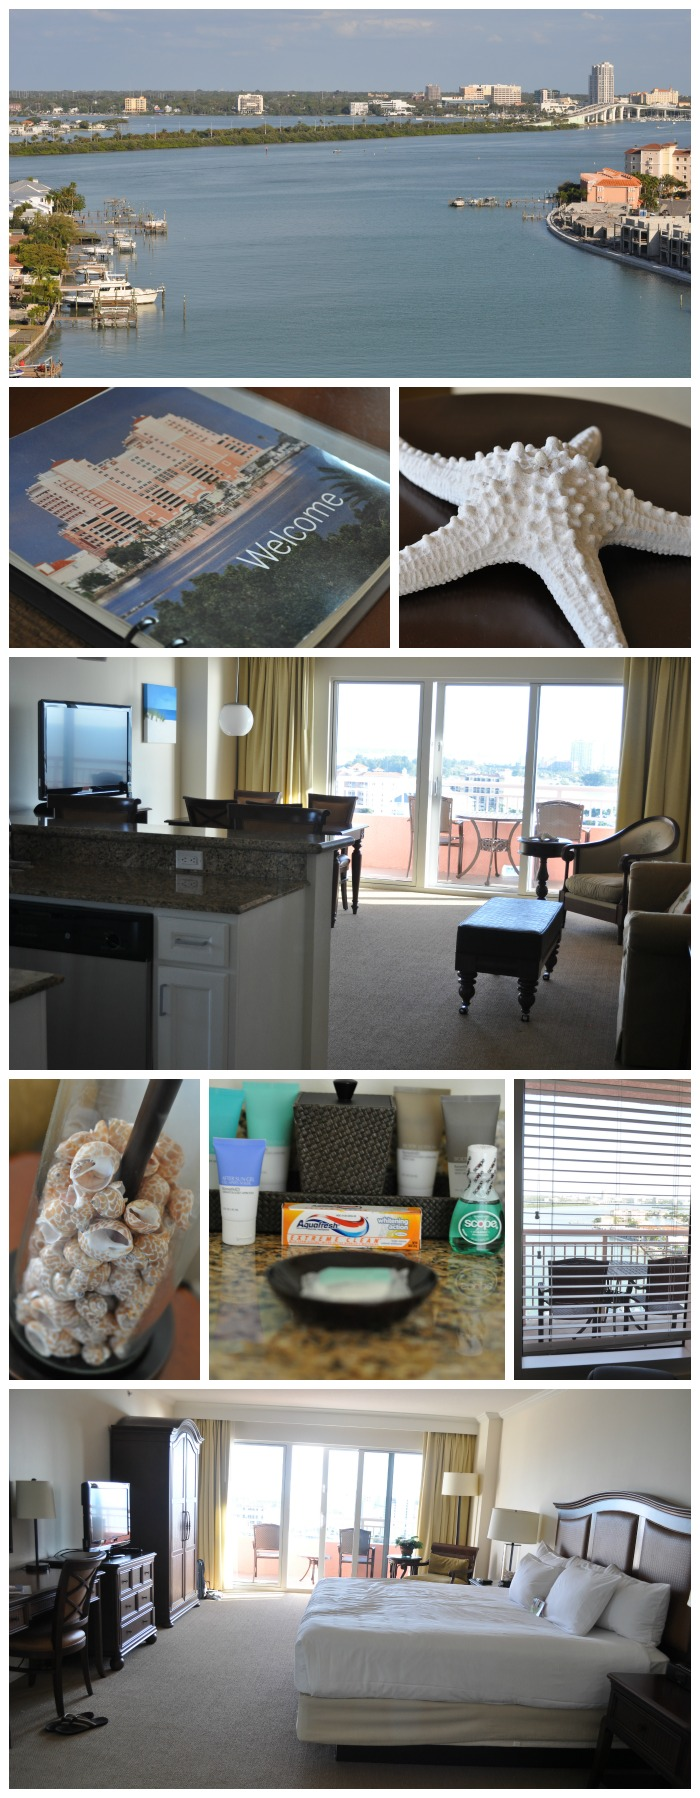 Pictures of the Hyatt Regency Clearwater Beach Resort and Spa, including the hotel room, bathroom amenities, and balcony view of the gulf